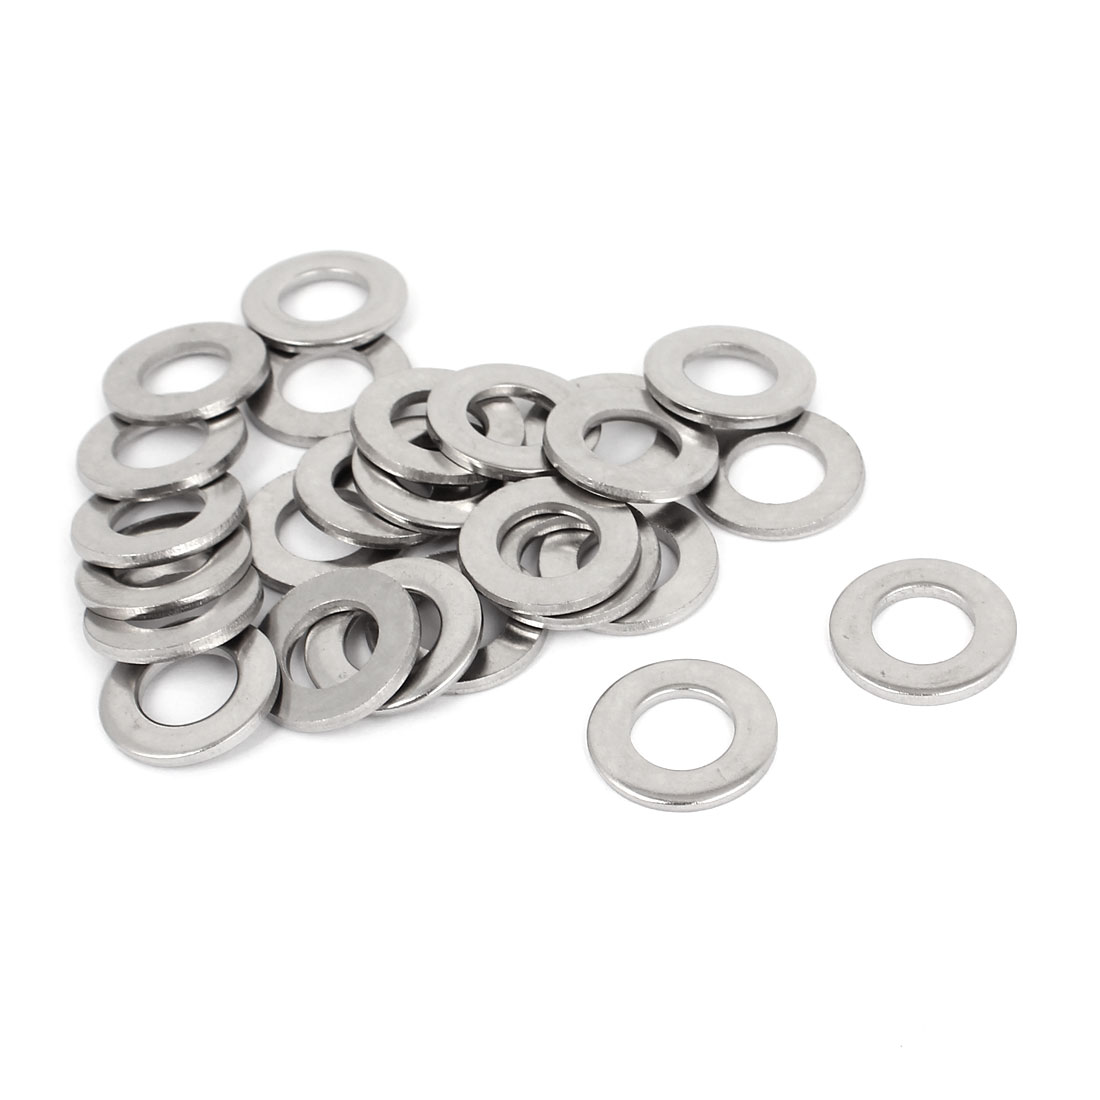 "25pcs Silver Tone 316 Stainless Steel Flat Washer 3/8"" for Screws Bolts"